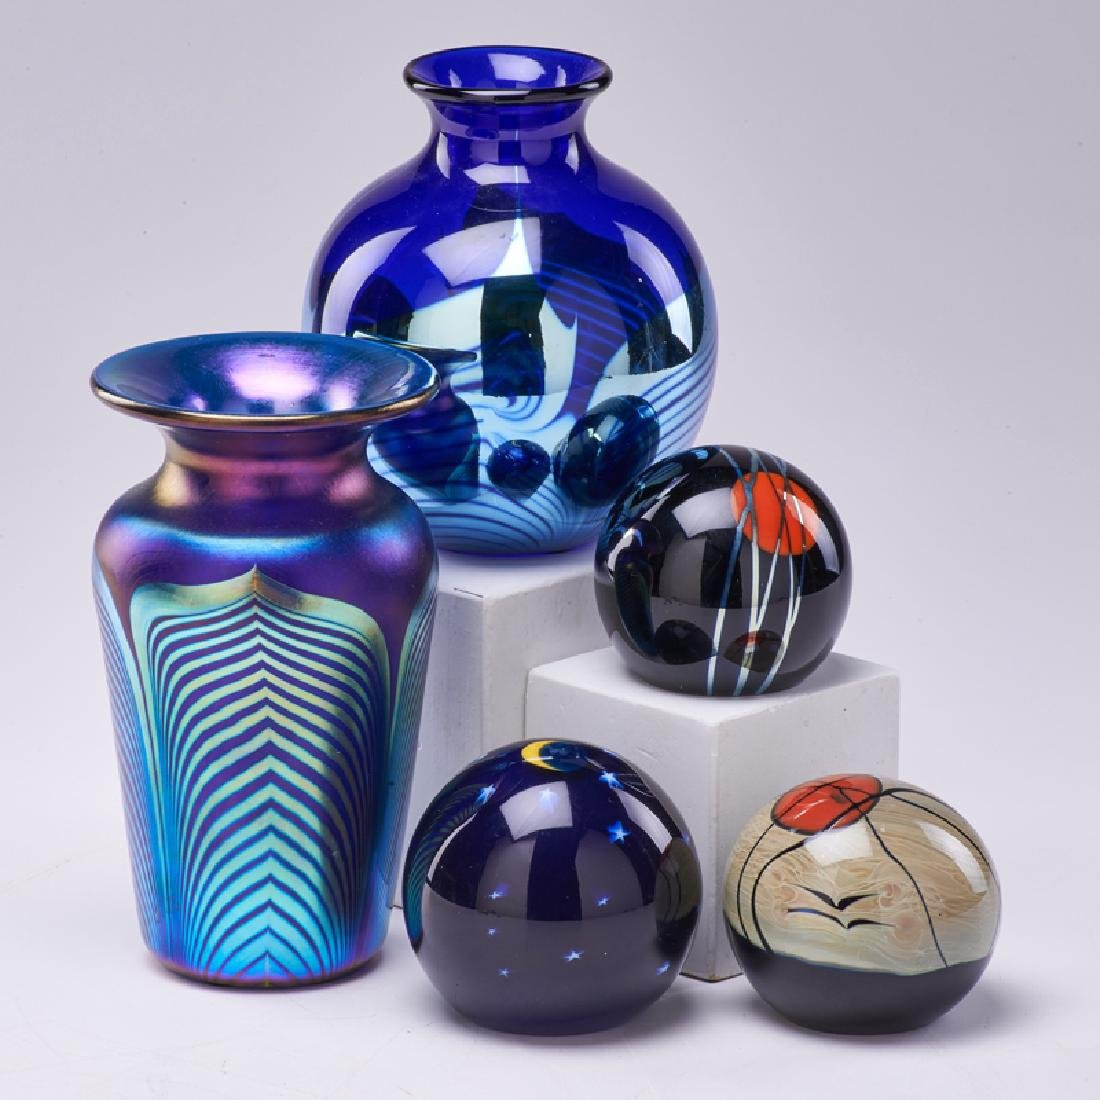 CORREIA ART GLASS; LUNDBERG STUDIO